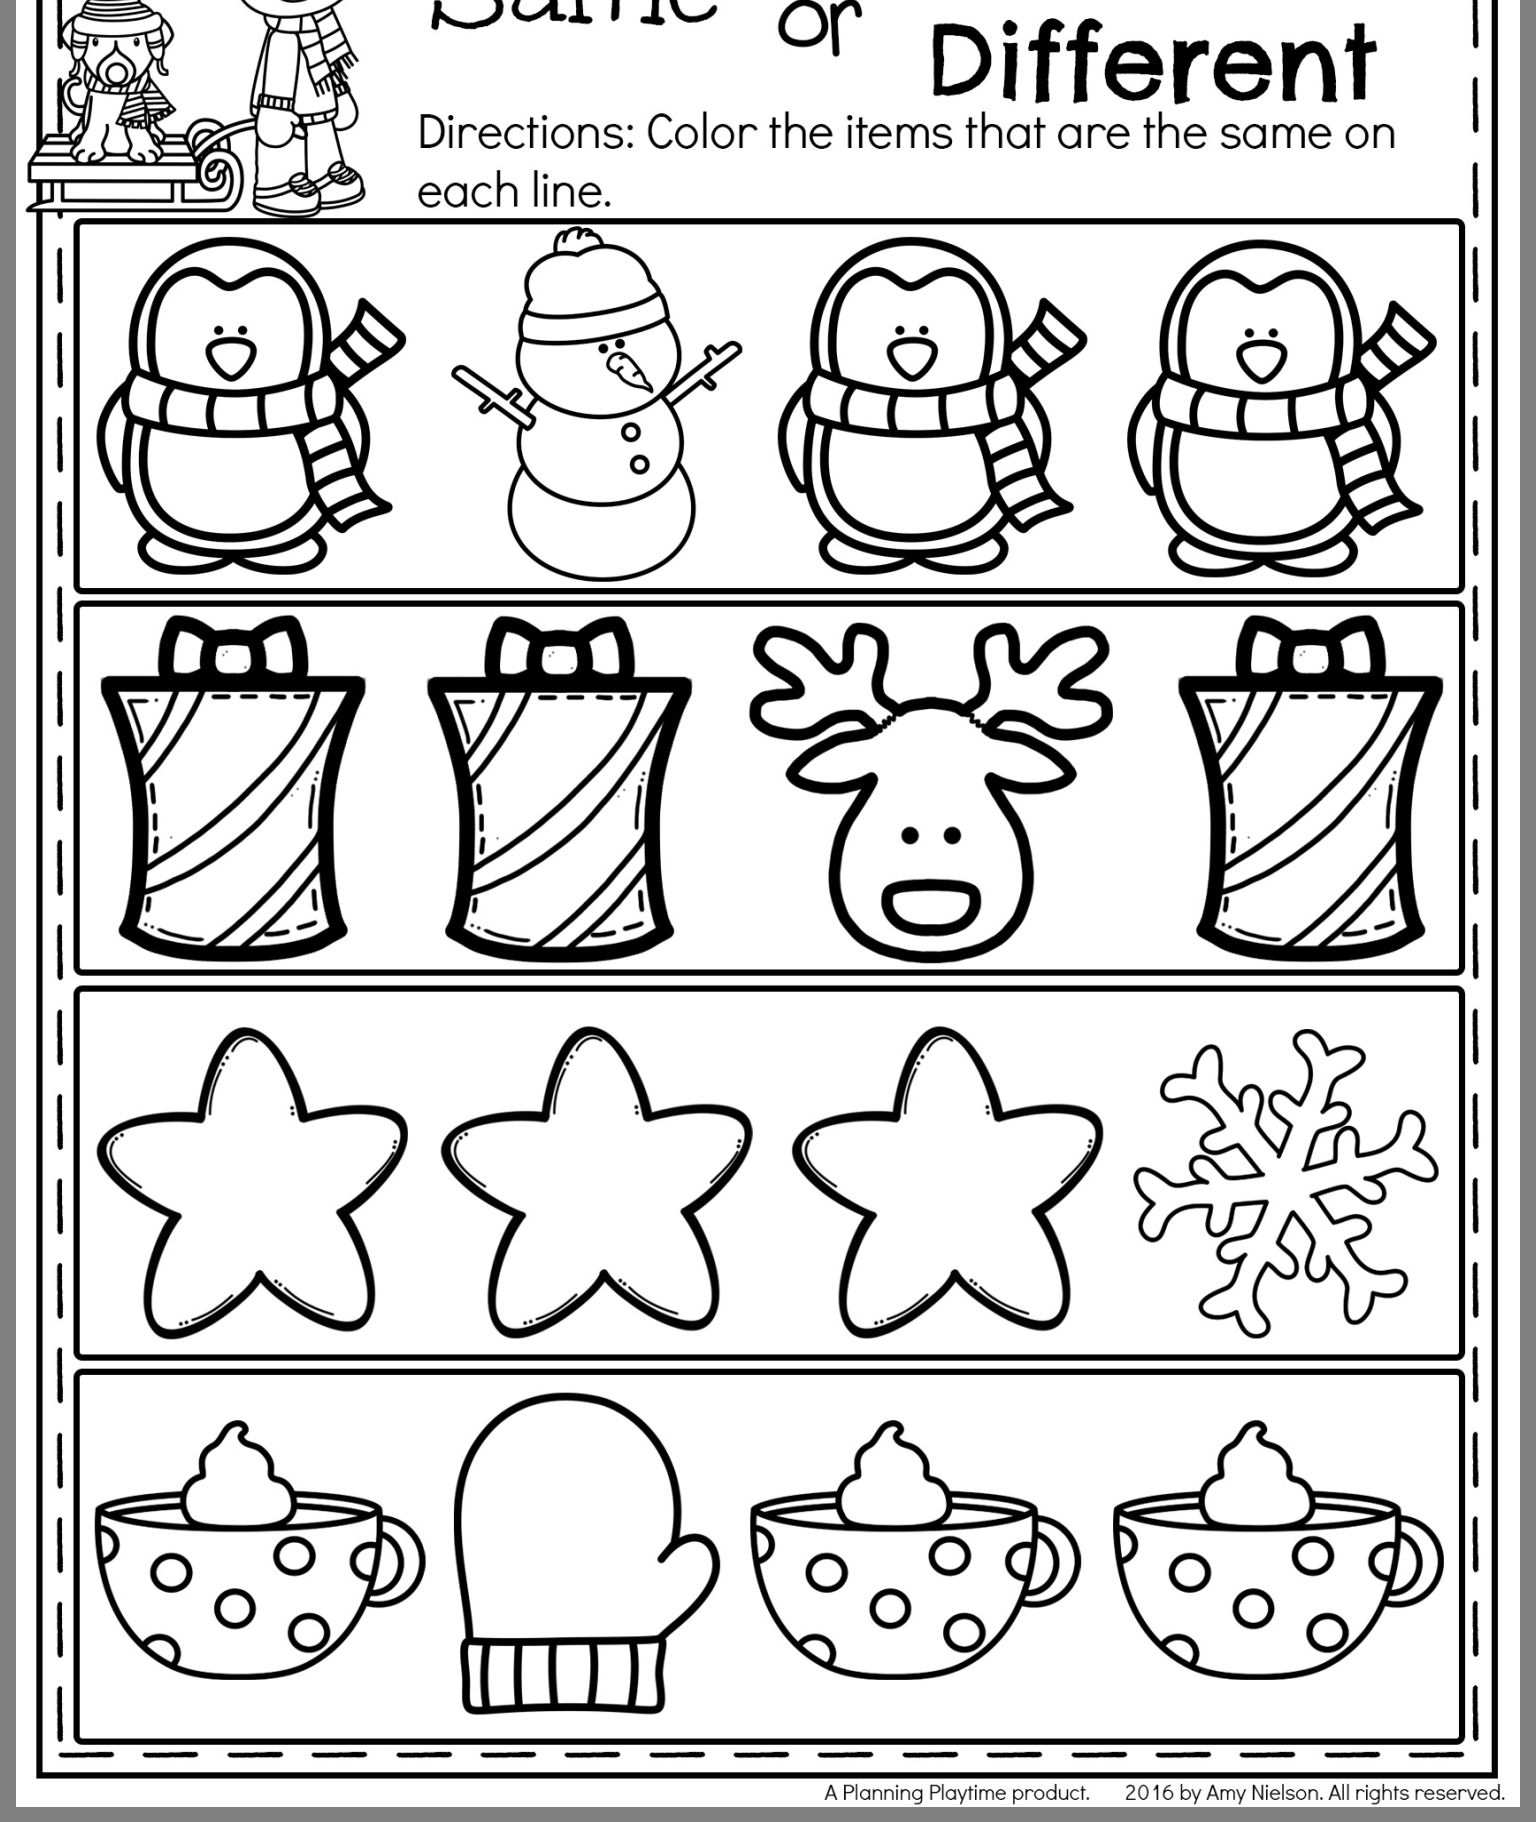 Preschool Printables Image By Kim Wesling On Preschool